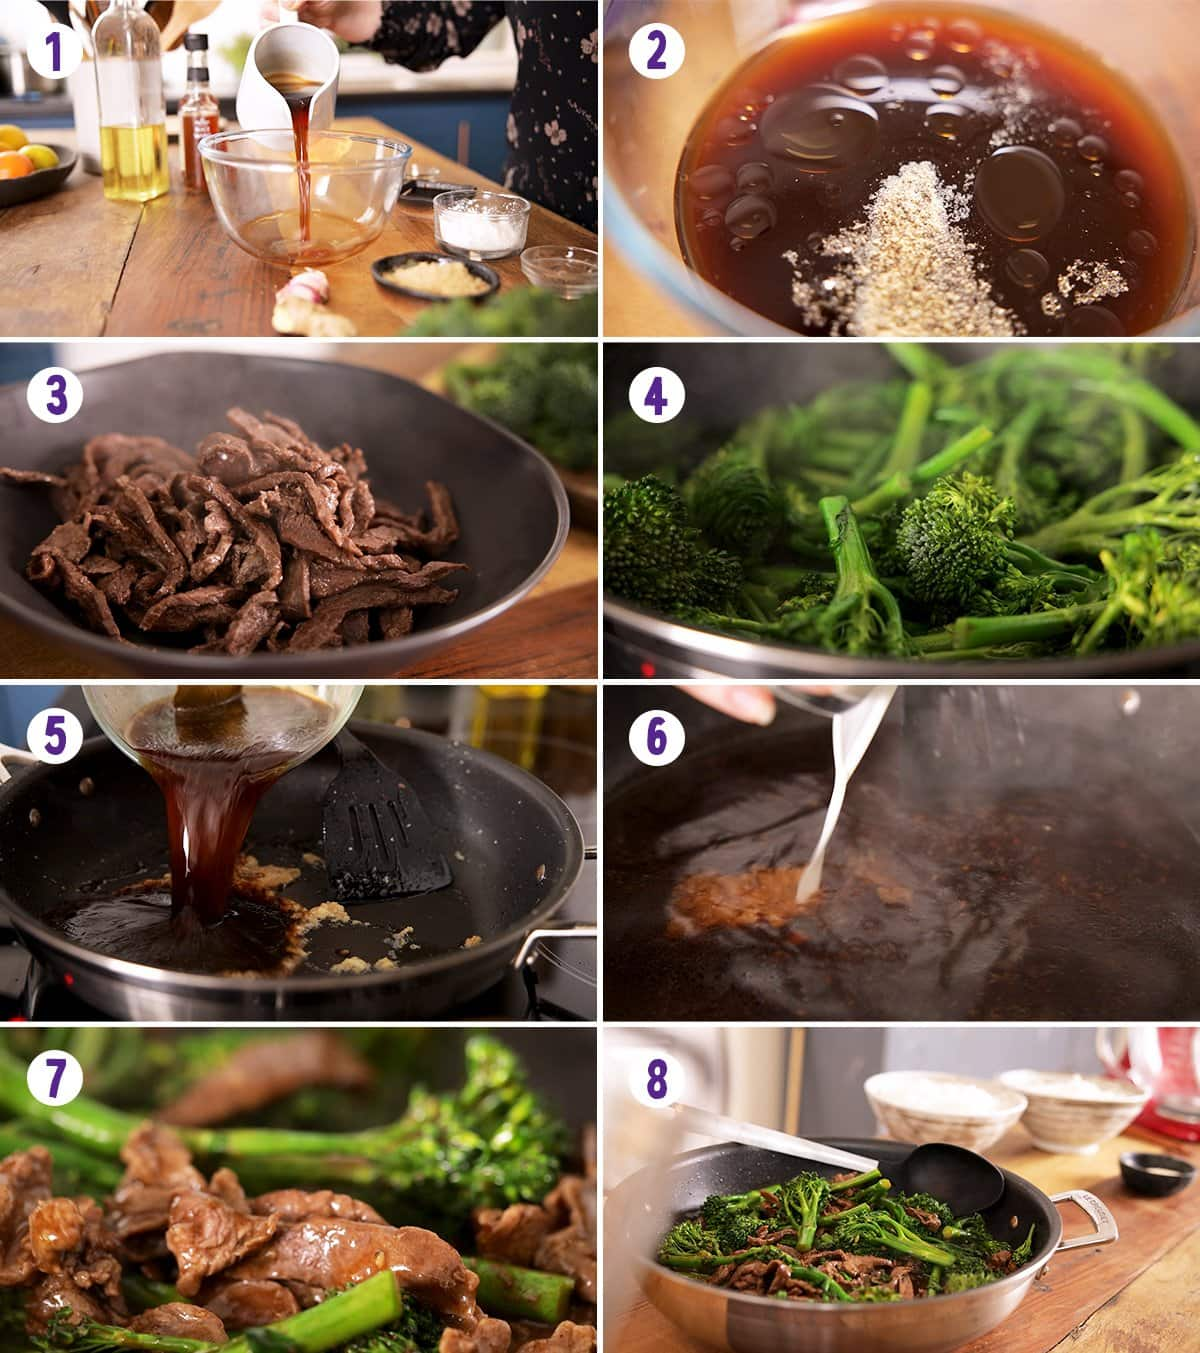 8 image collage showing how to make beef and broccoli